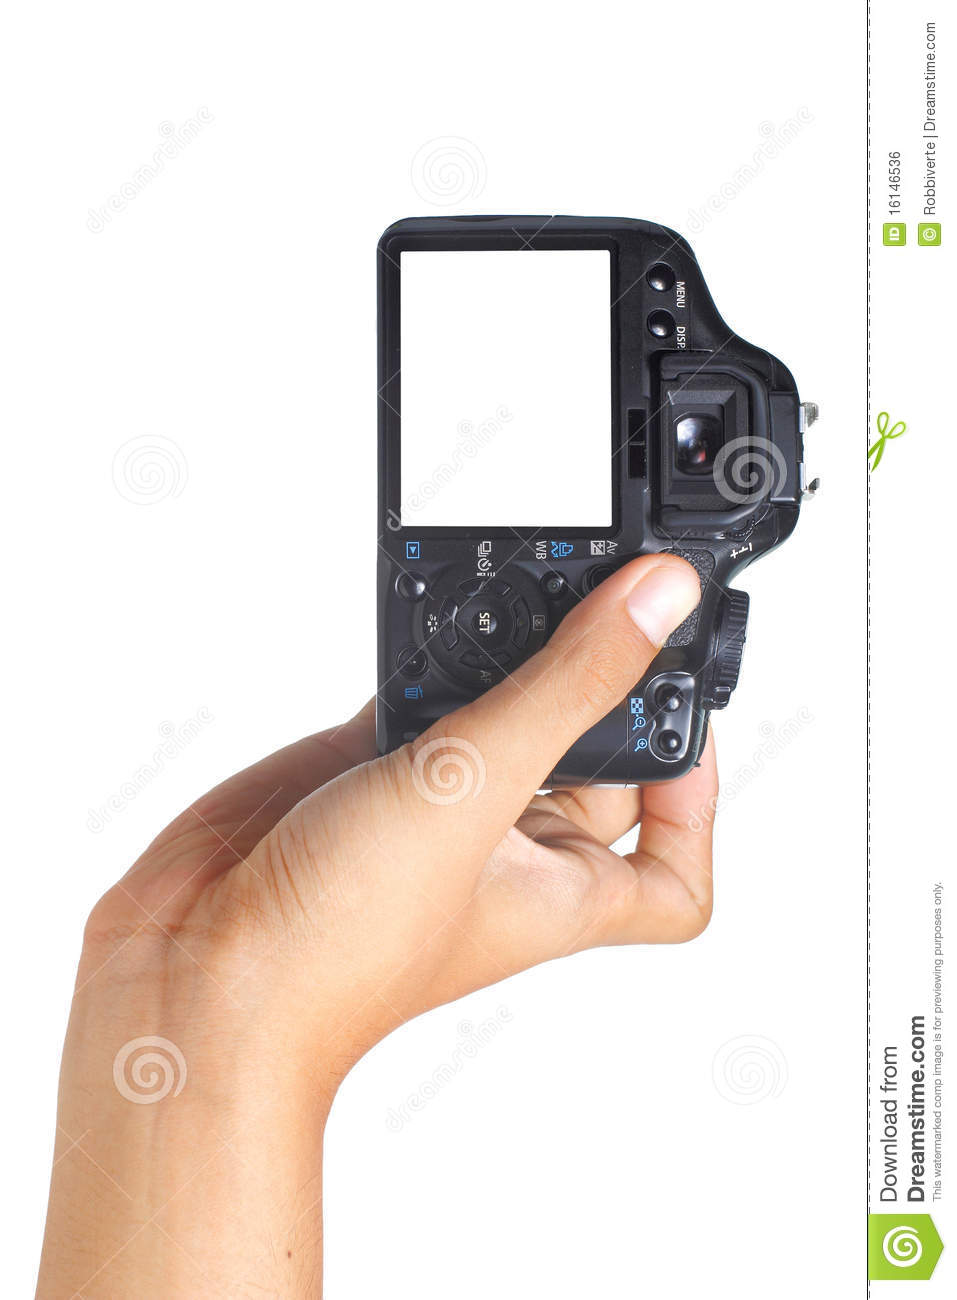 hand holding camera royalty free stock image image 16146536